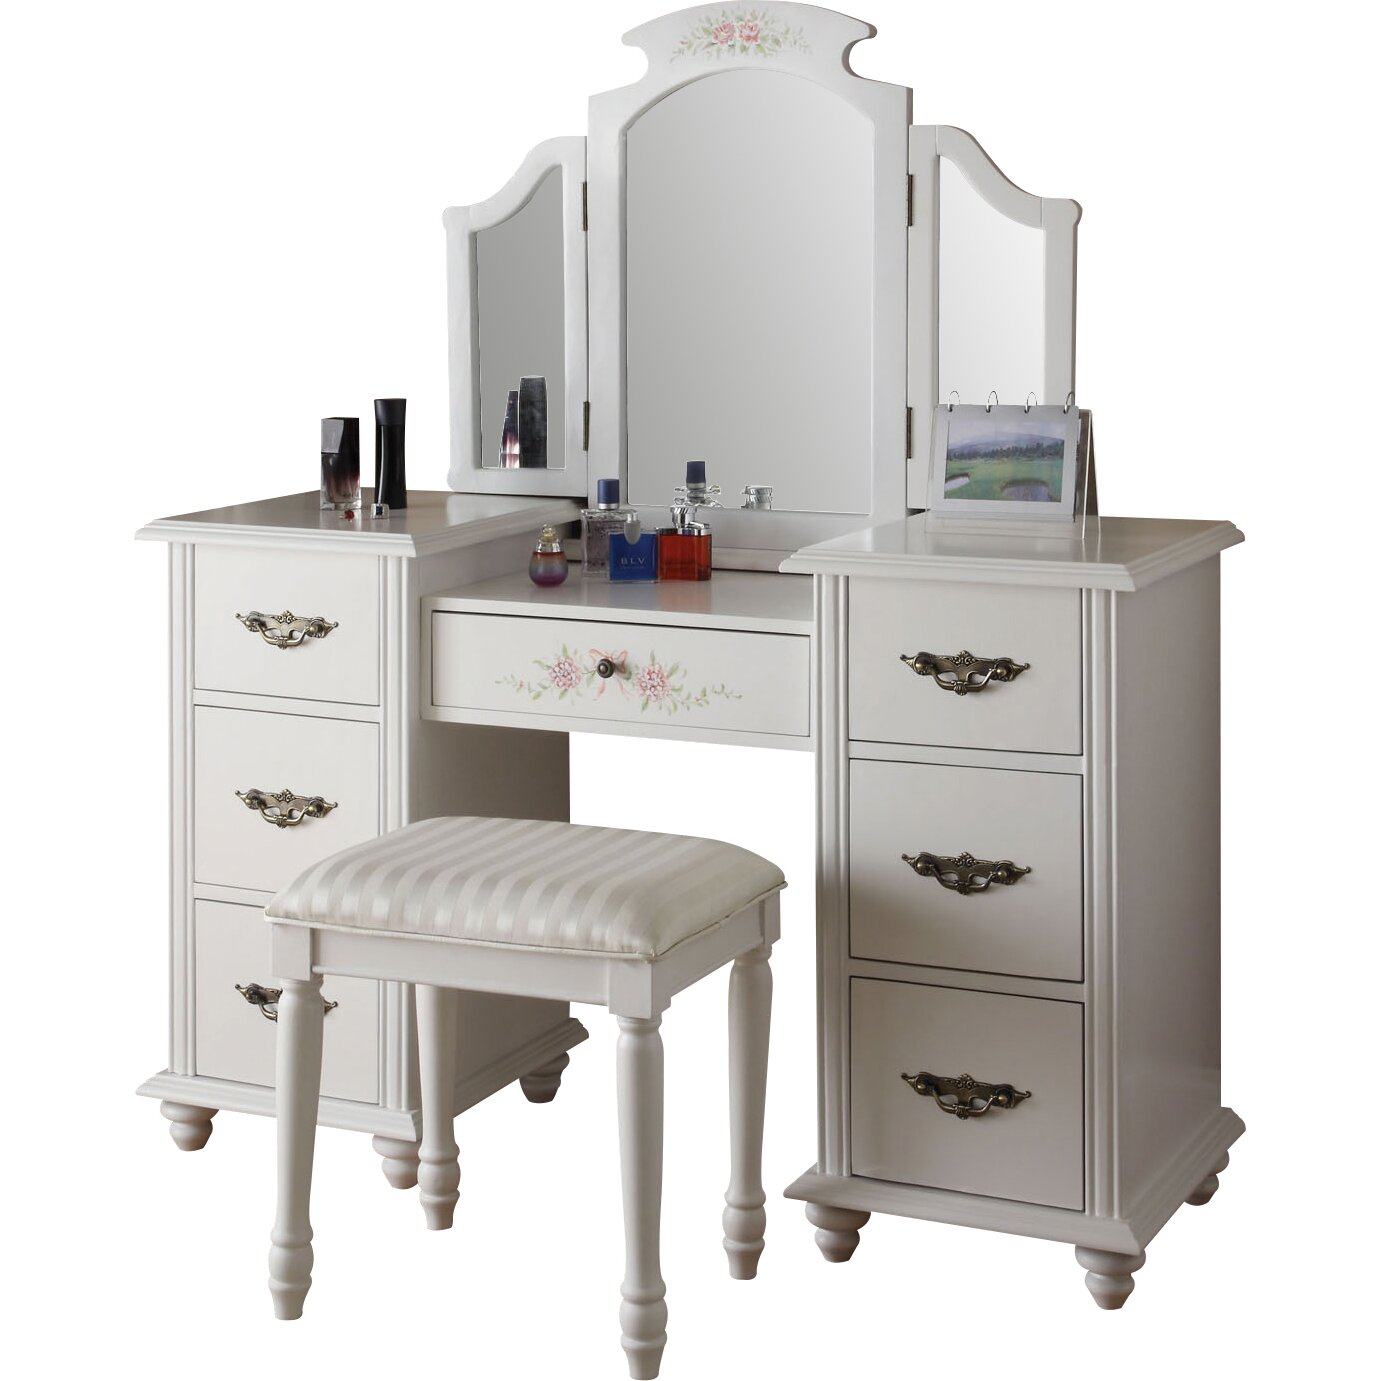 Infini Furnishings Makeup Vanity Set With Mirror Amp Reviews